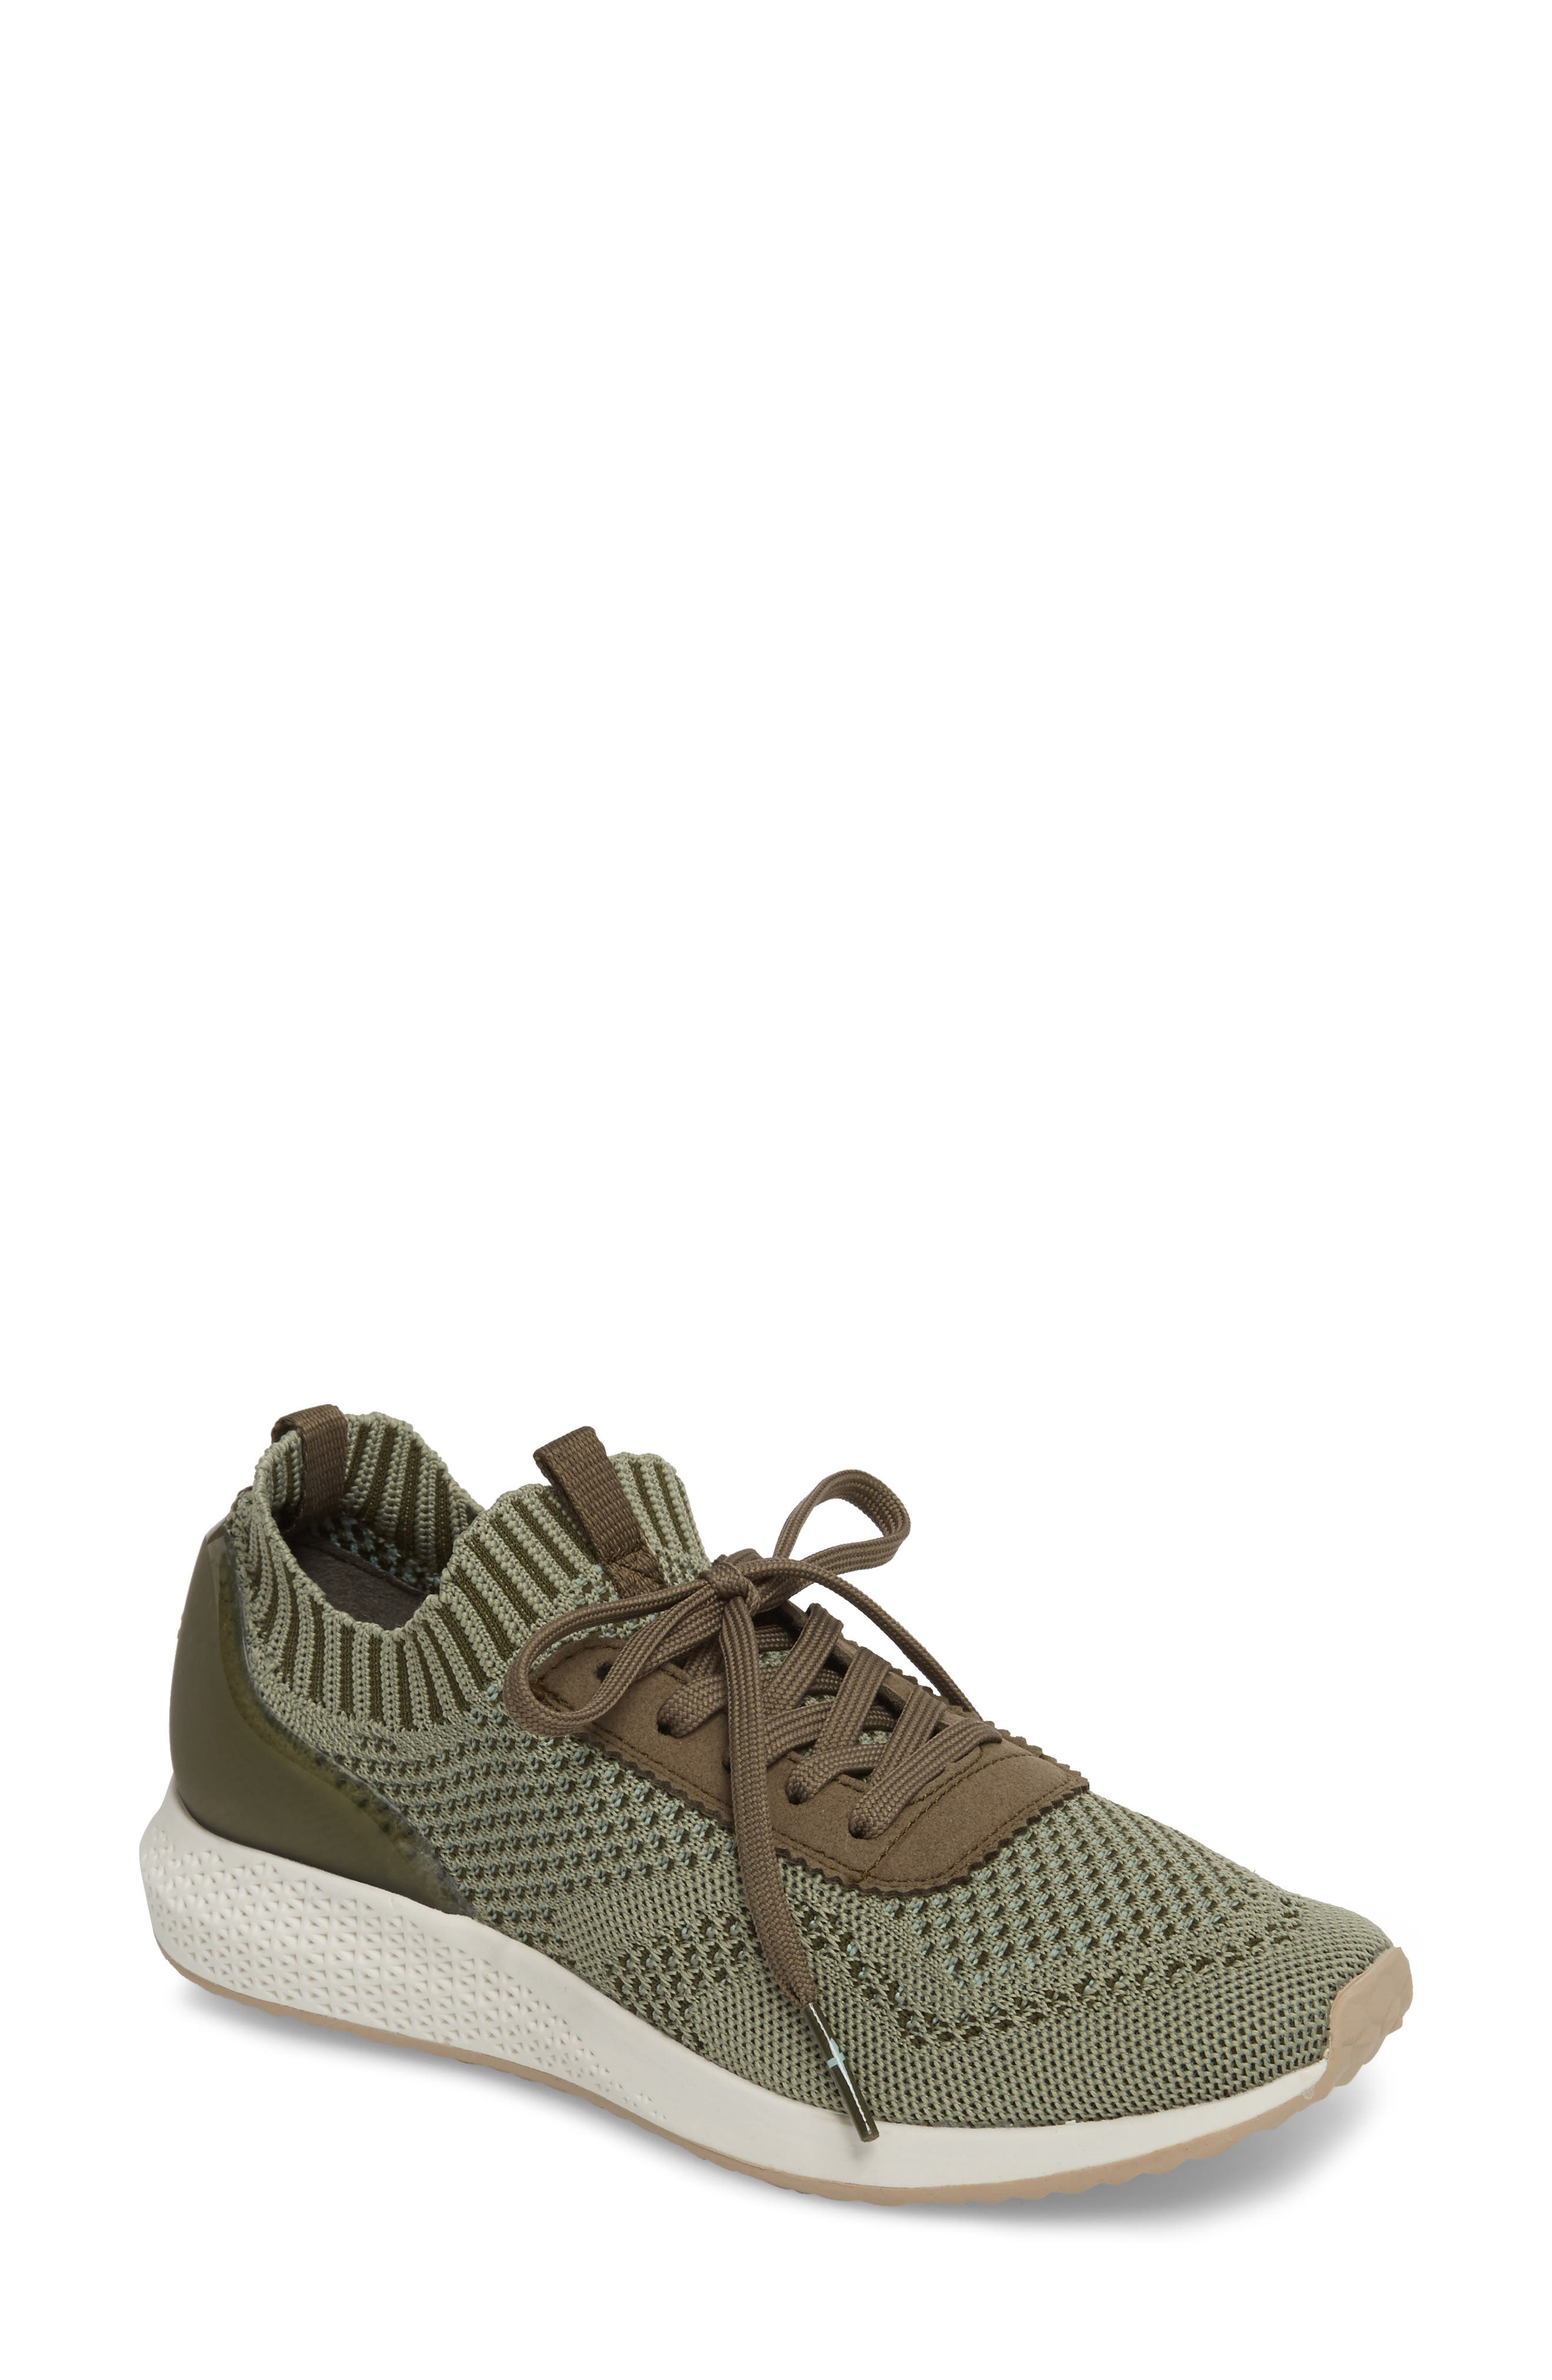 Tavia Sneaker,                             Main thumbnail 1, color,                             Olive Leather